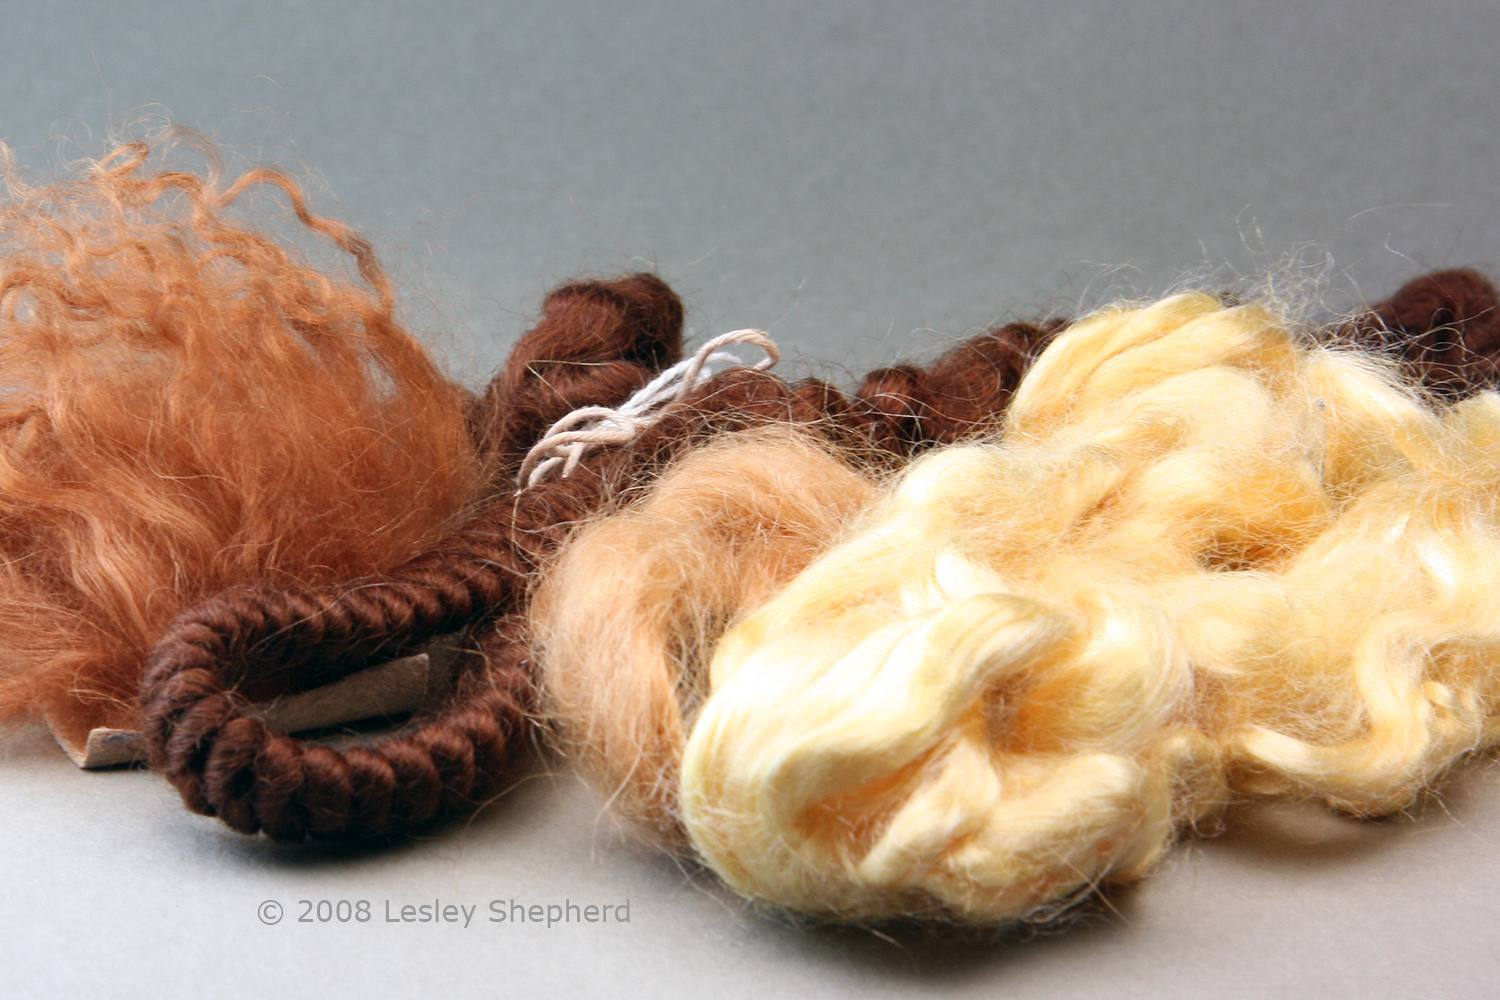 Some fibers used for making wigs for miniature dolls. These include (left to right) Tibetan lambs wool, braided and stranded mohair, and viscose.